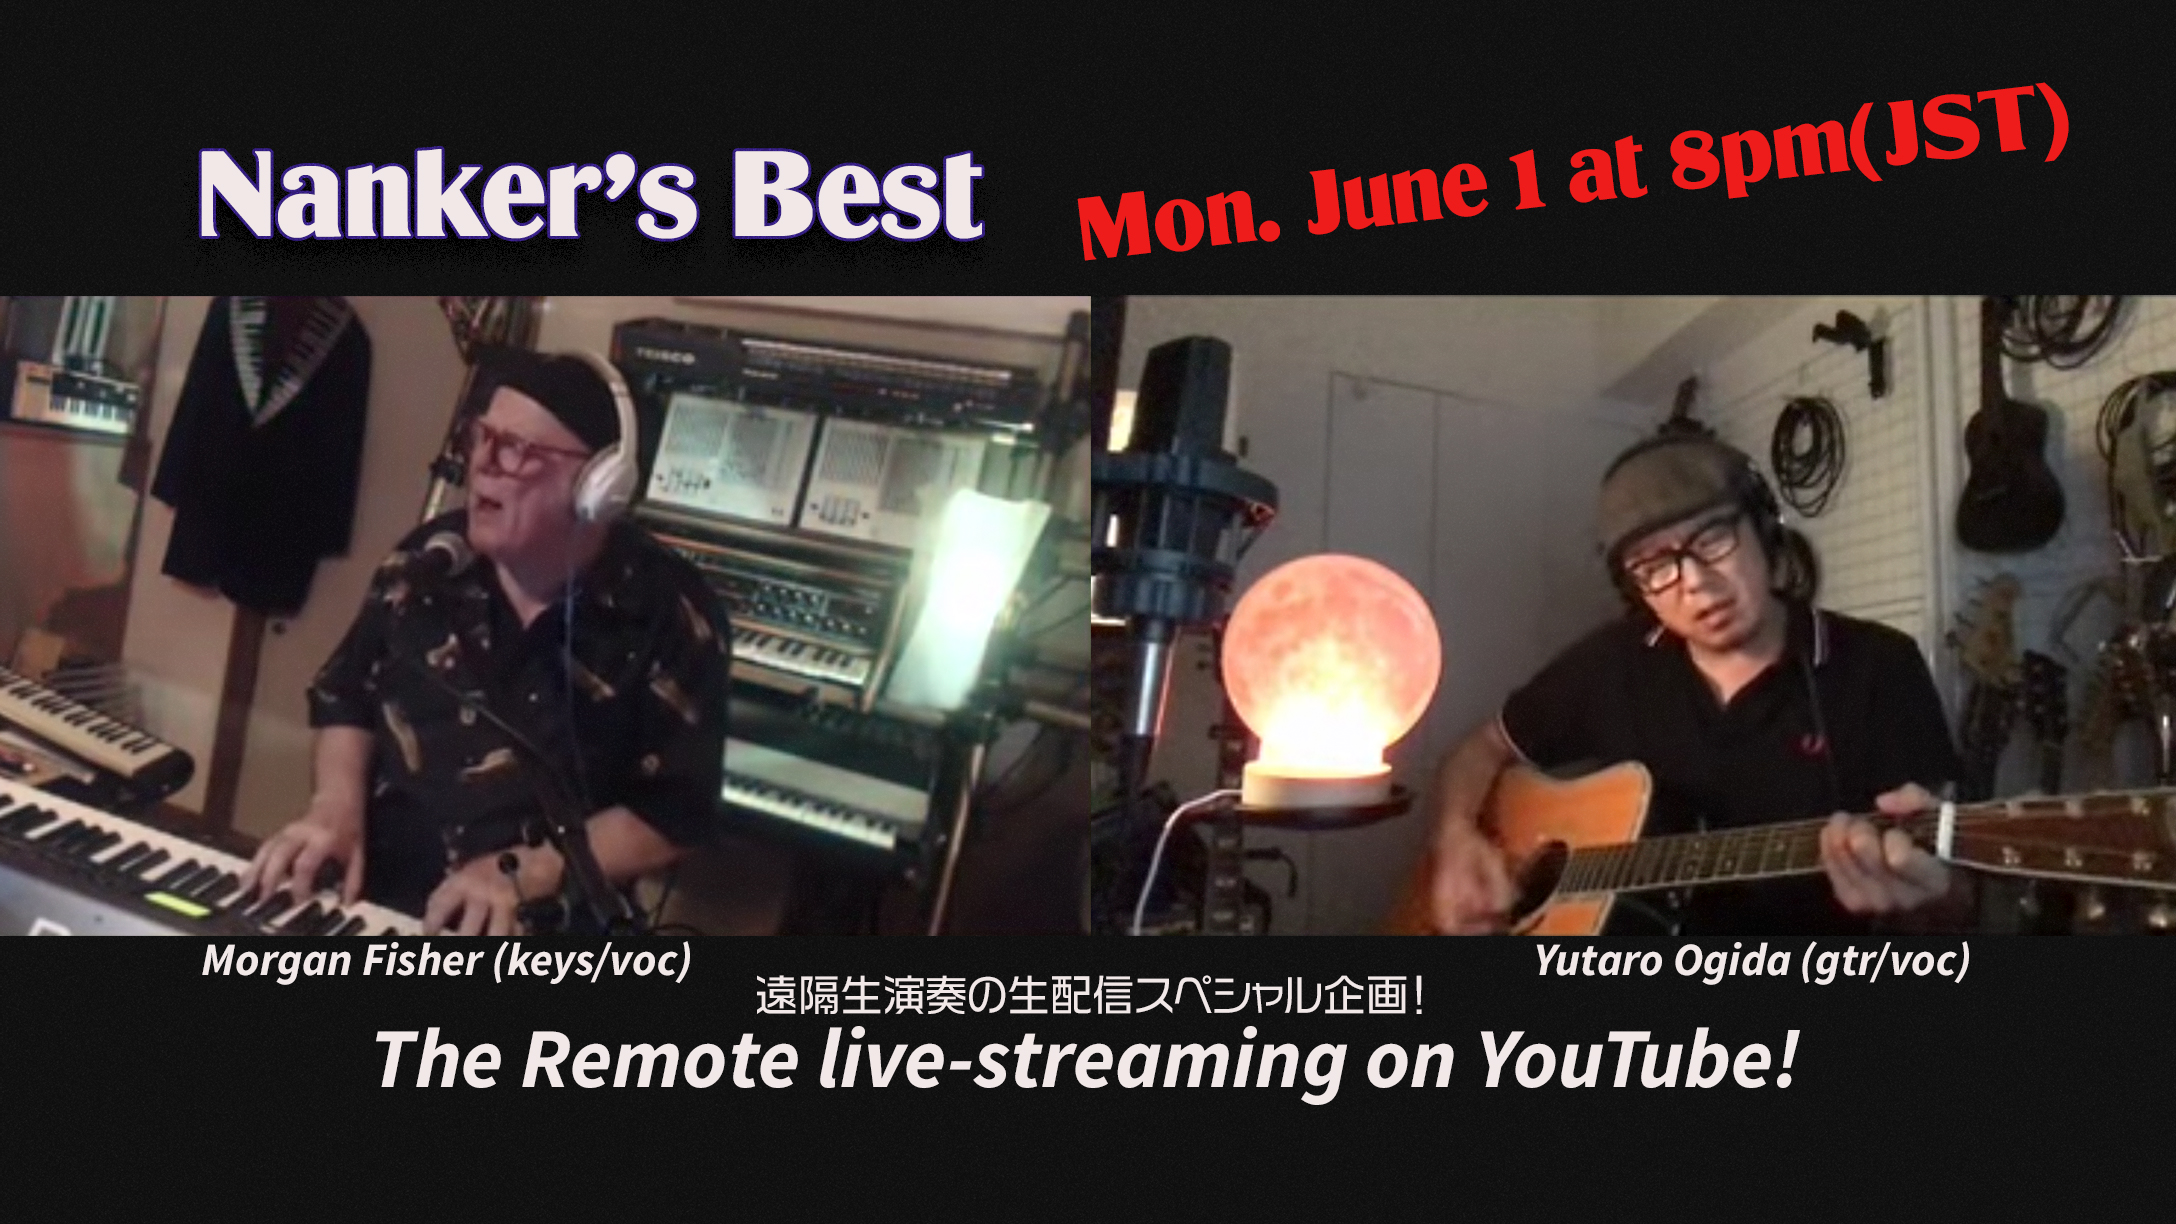 NANKER'S BEST Remote live streaming on YouTube!